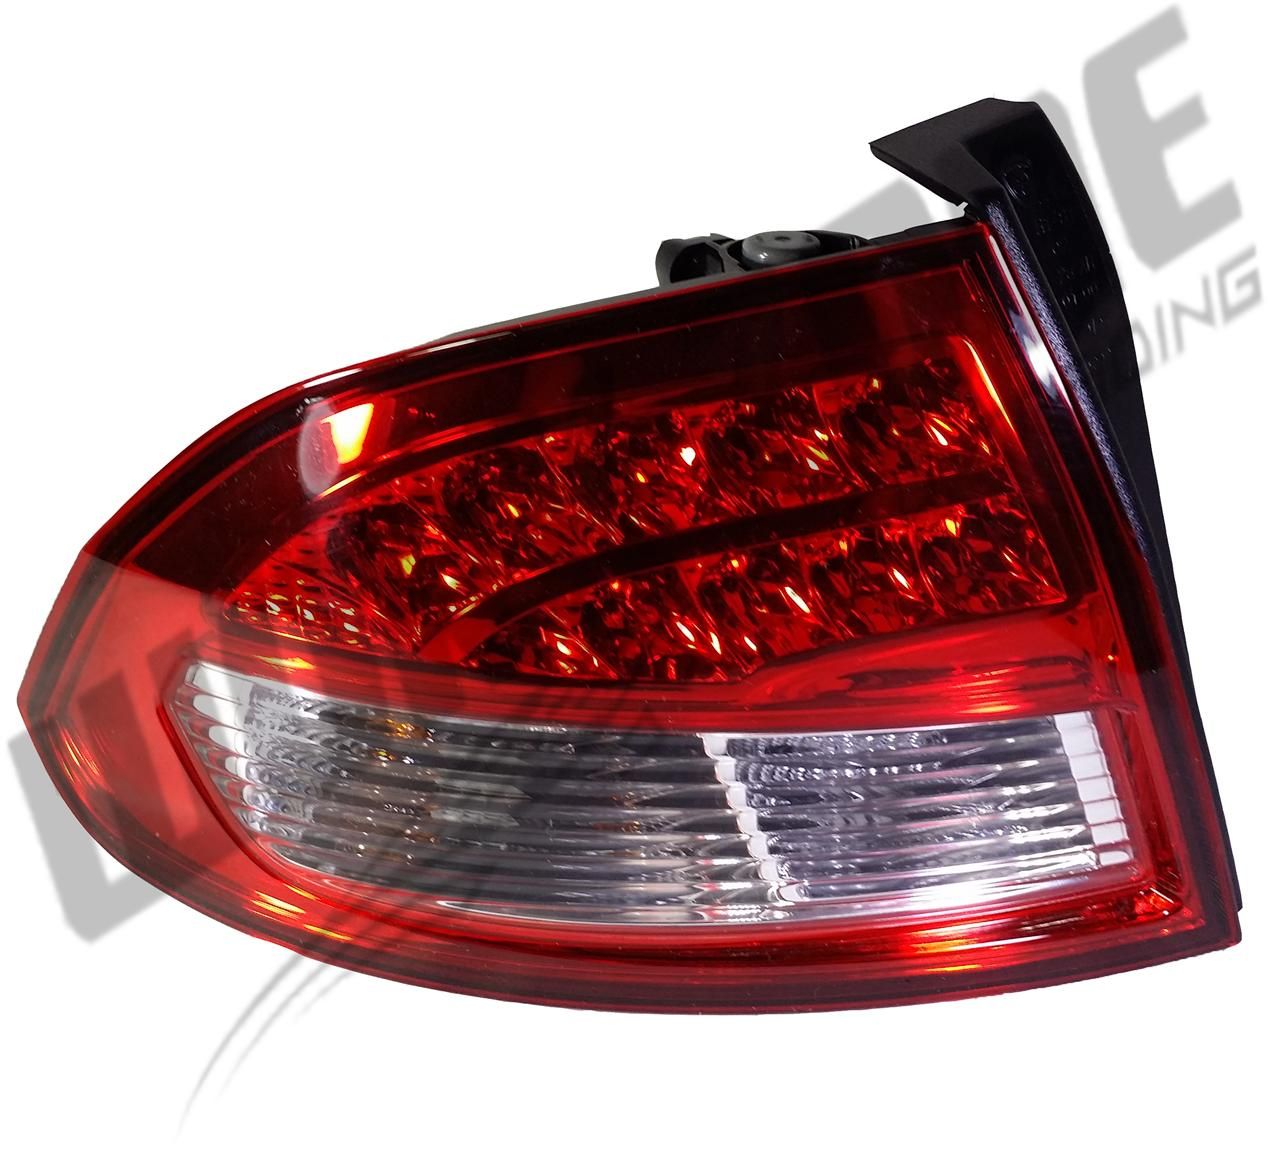 PROTON SAGA2 FLX TAIL LAMP ORIGINAL